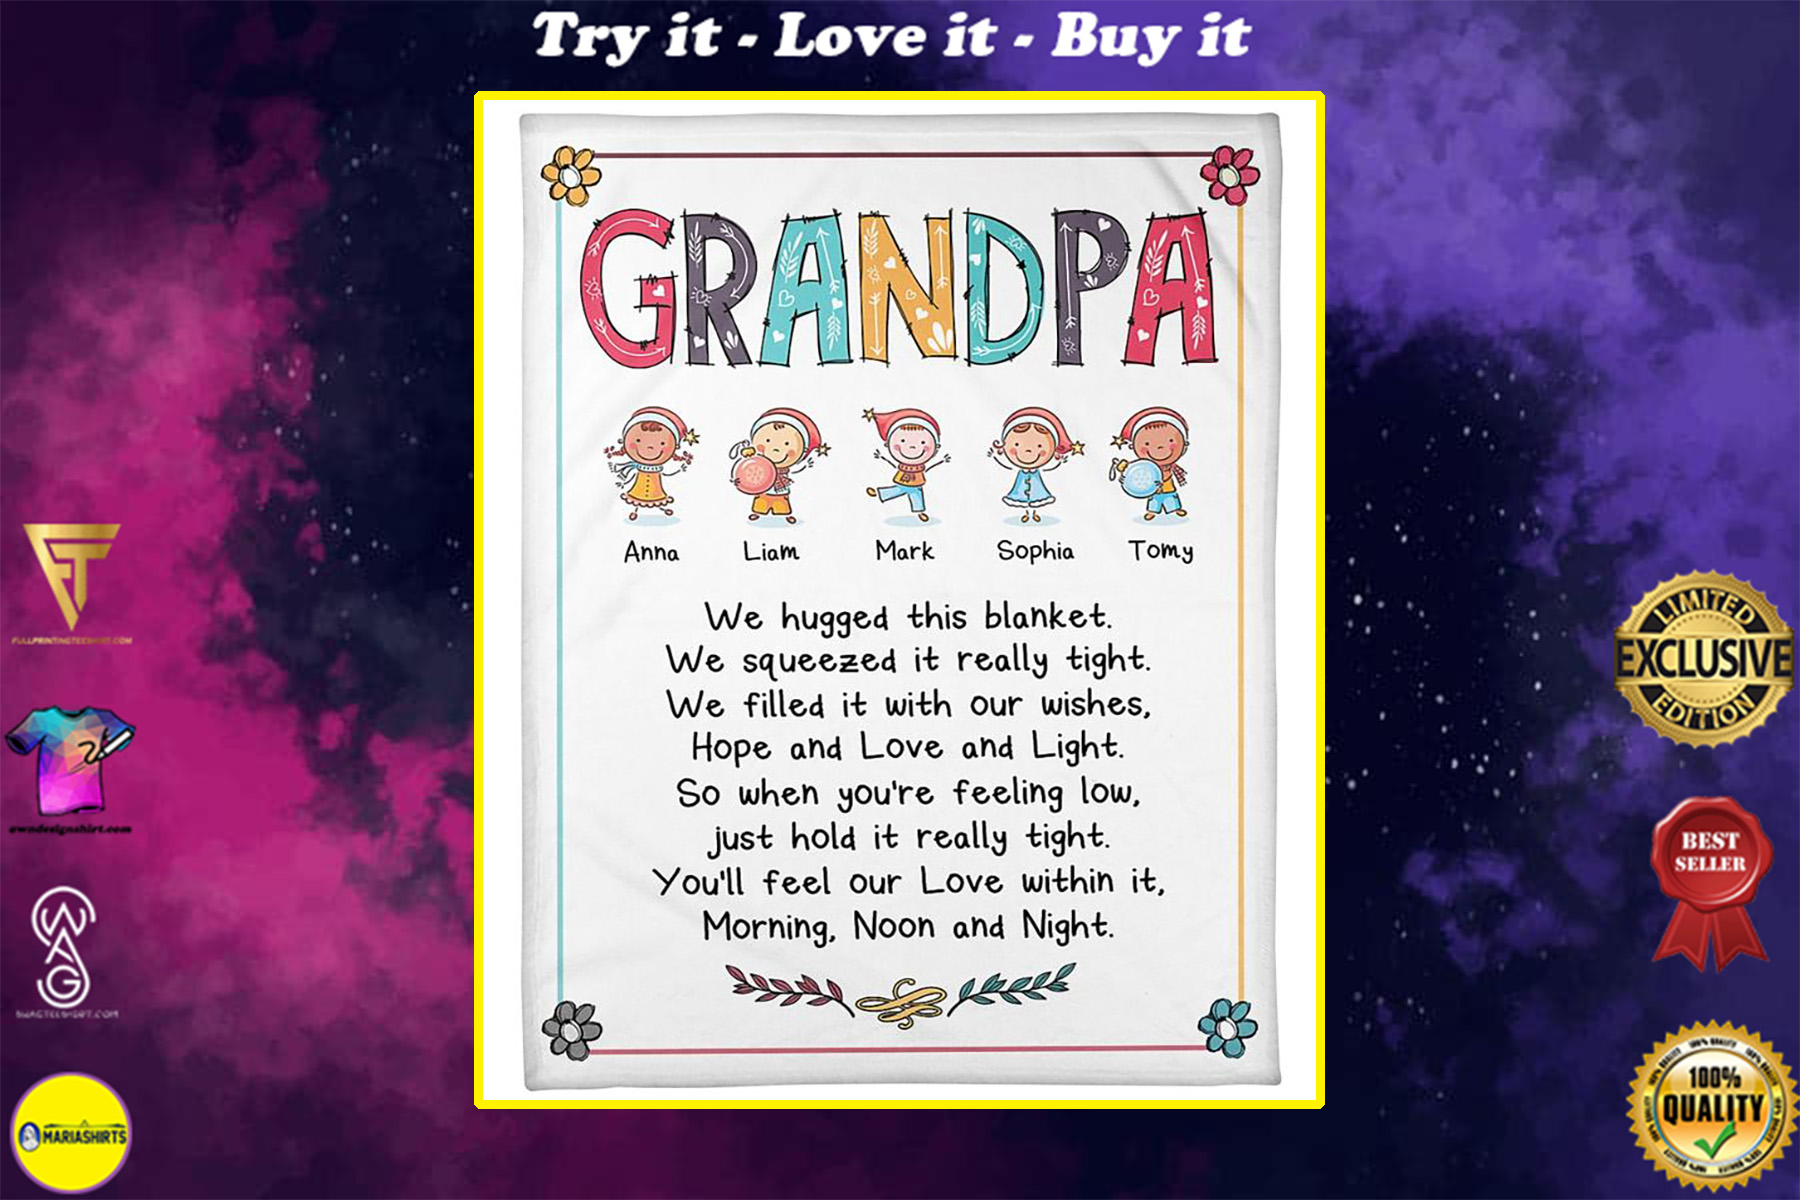 grandpa we hugged this blanket hope and love and light blanket